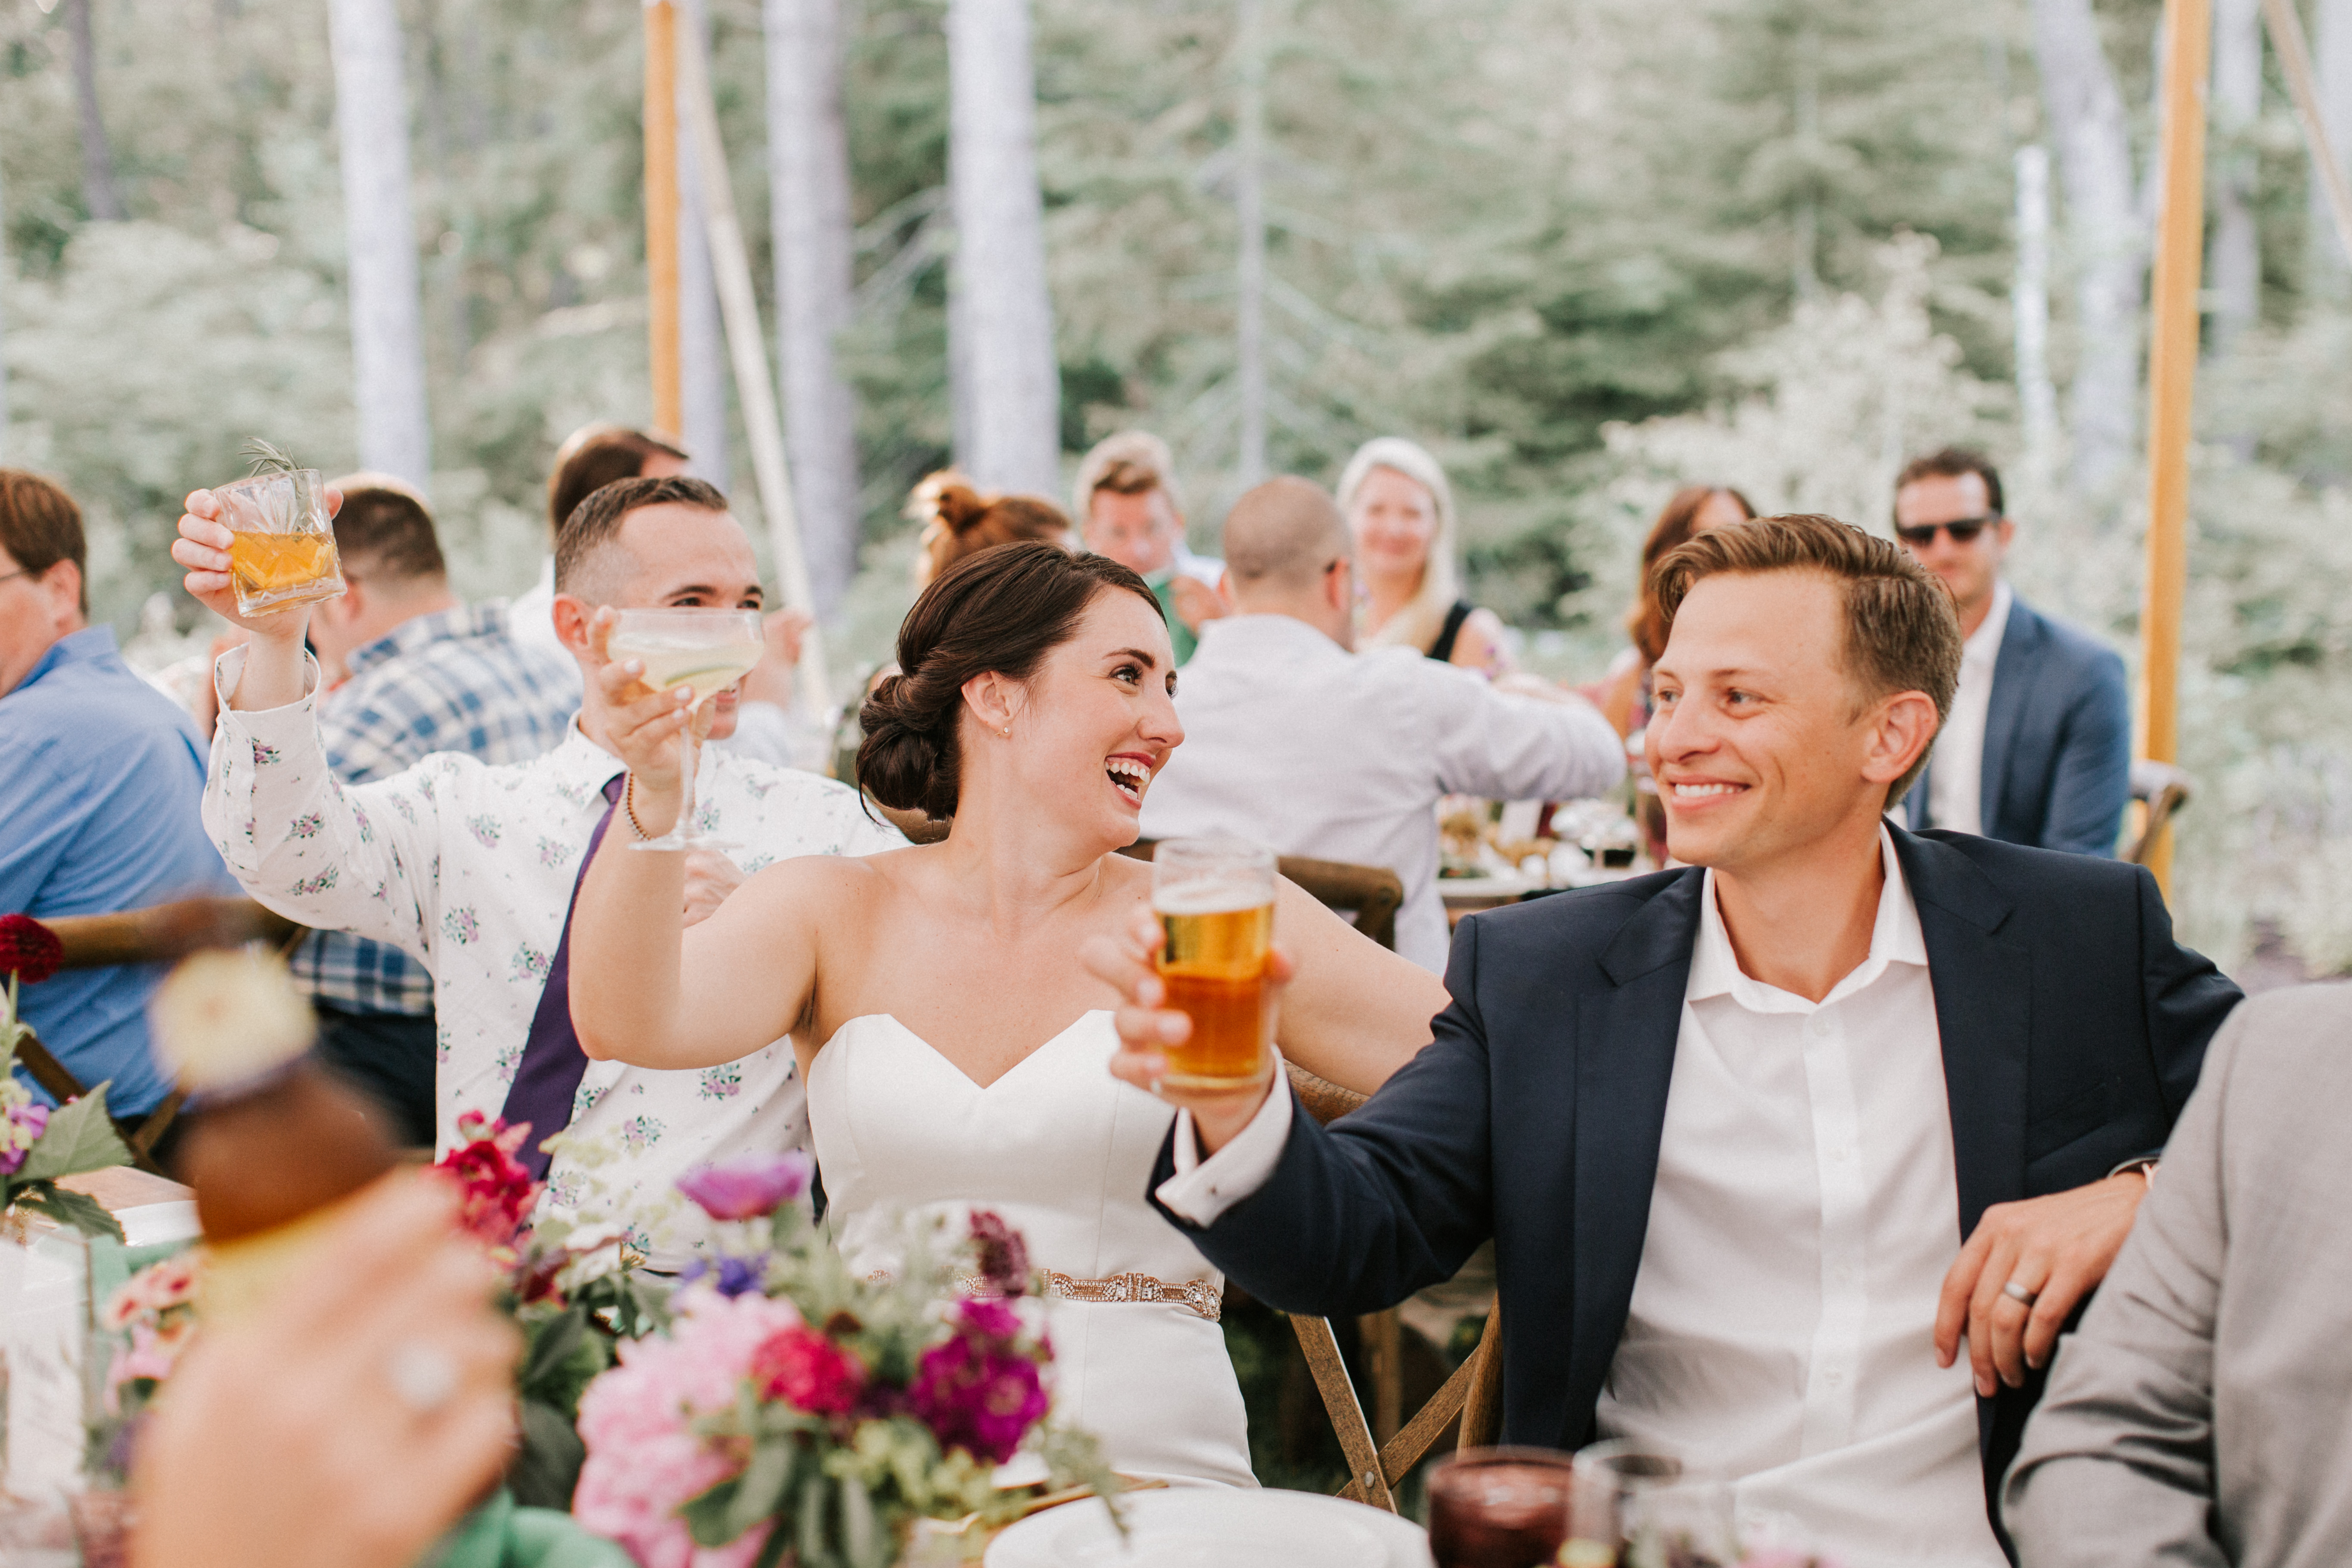 Bride and Groom toasting at Hidden Pond Wedding in Kennebunkport, Maine